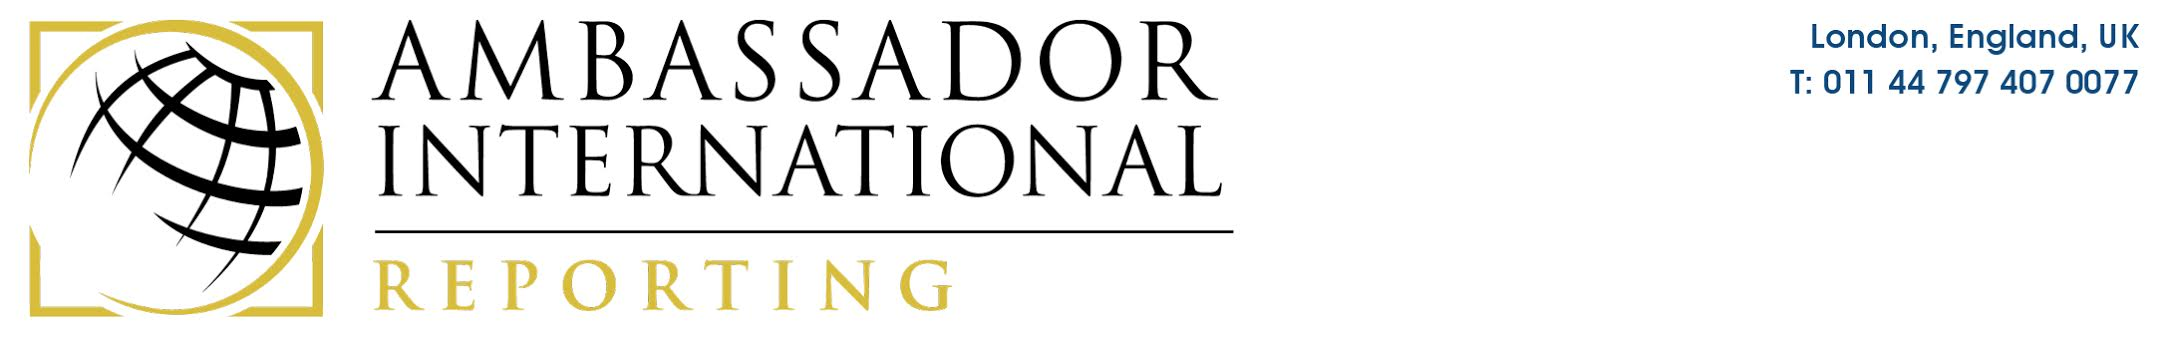 Ambassador International Reporting, Ltd.